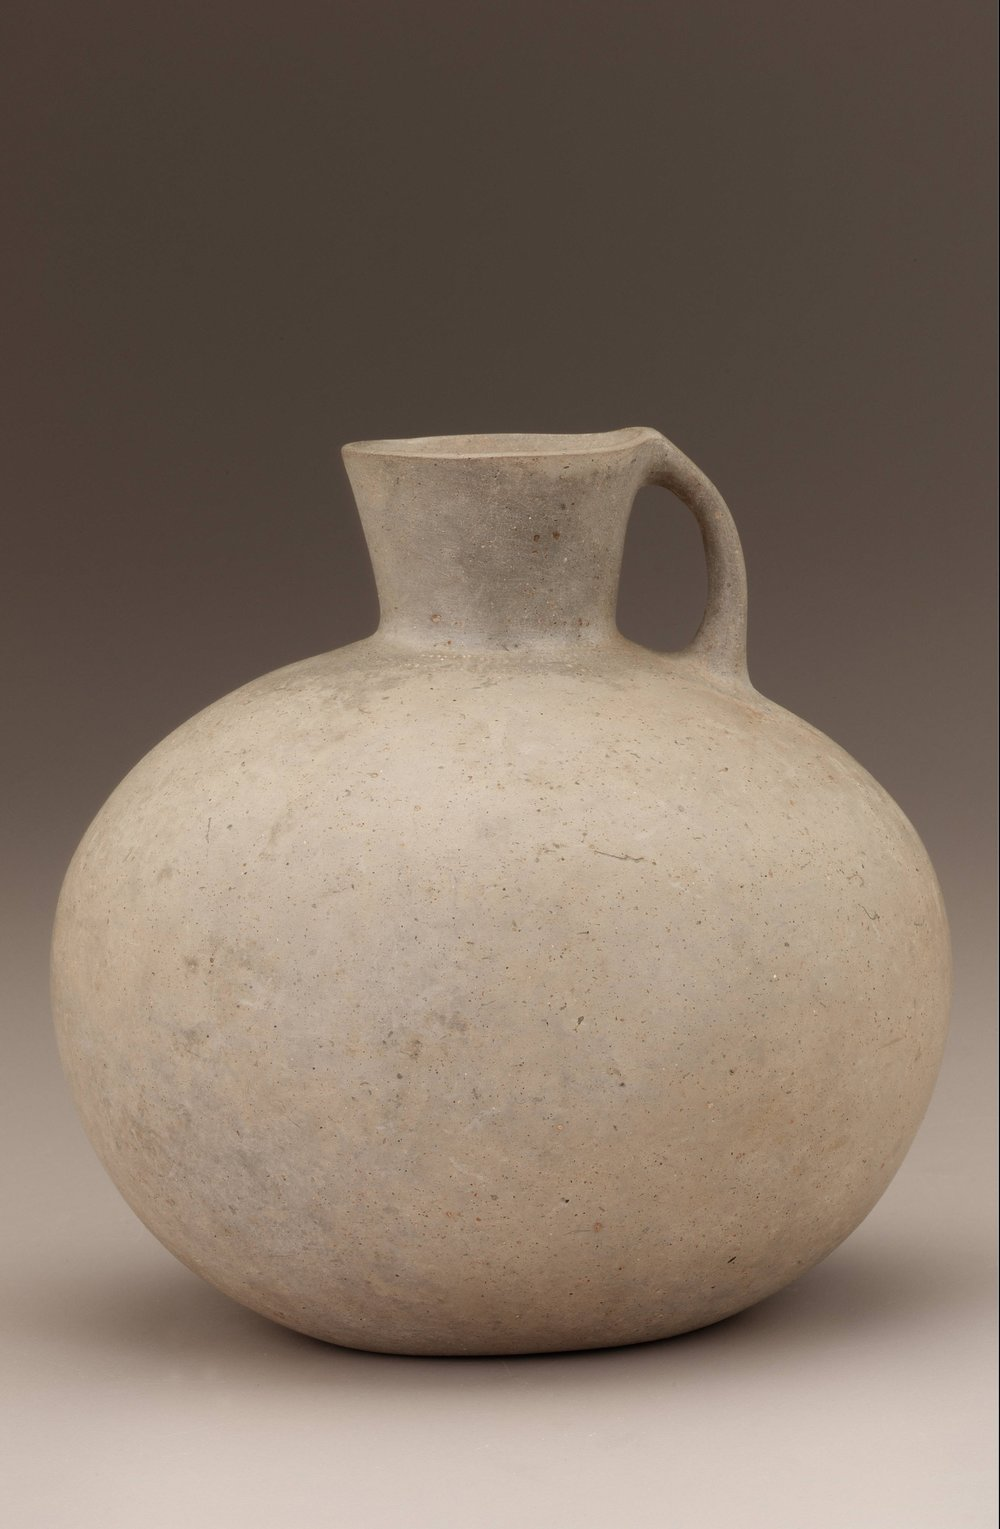 Earthenware Jar (1000 BCE) from the Freer Sackler Museum in Washington, DC